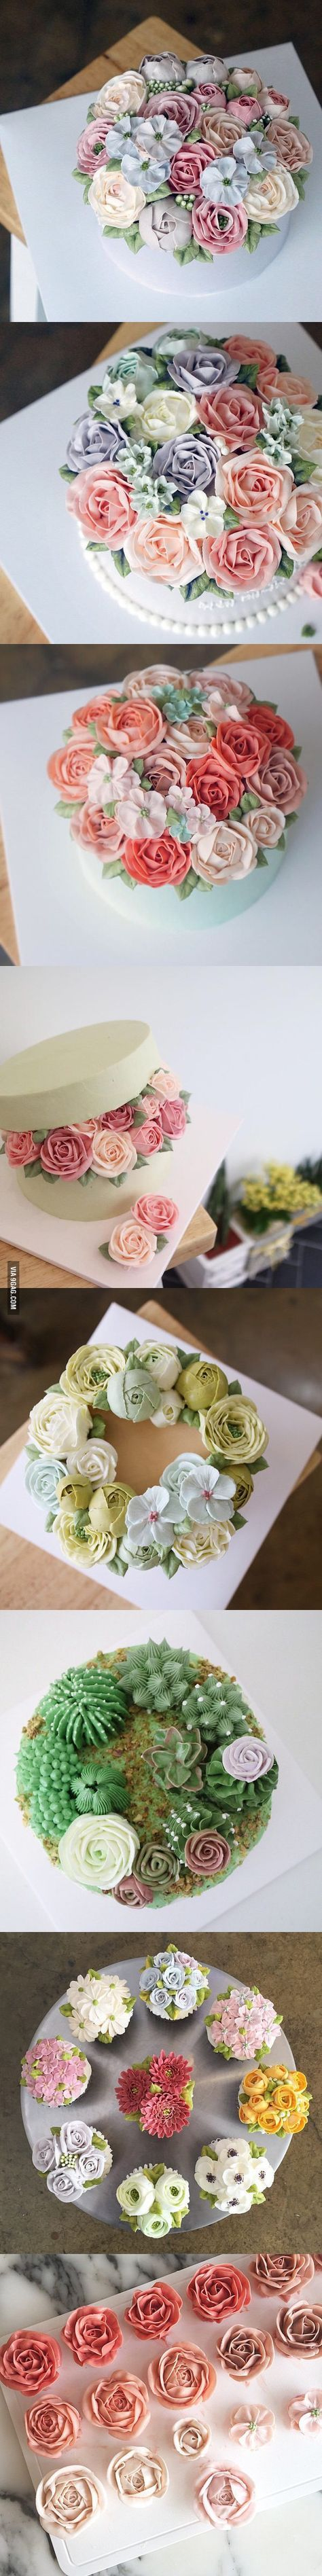 Bouquet cakes! Pretty for a bridal shower.